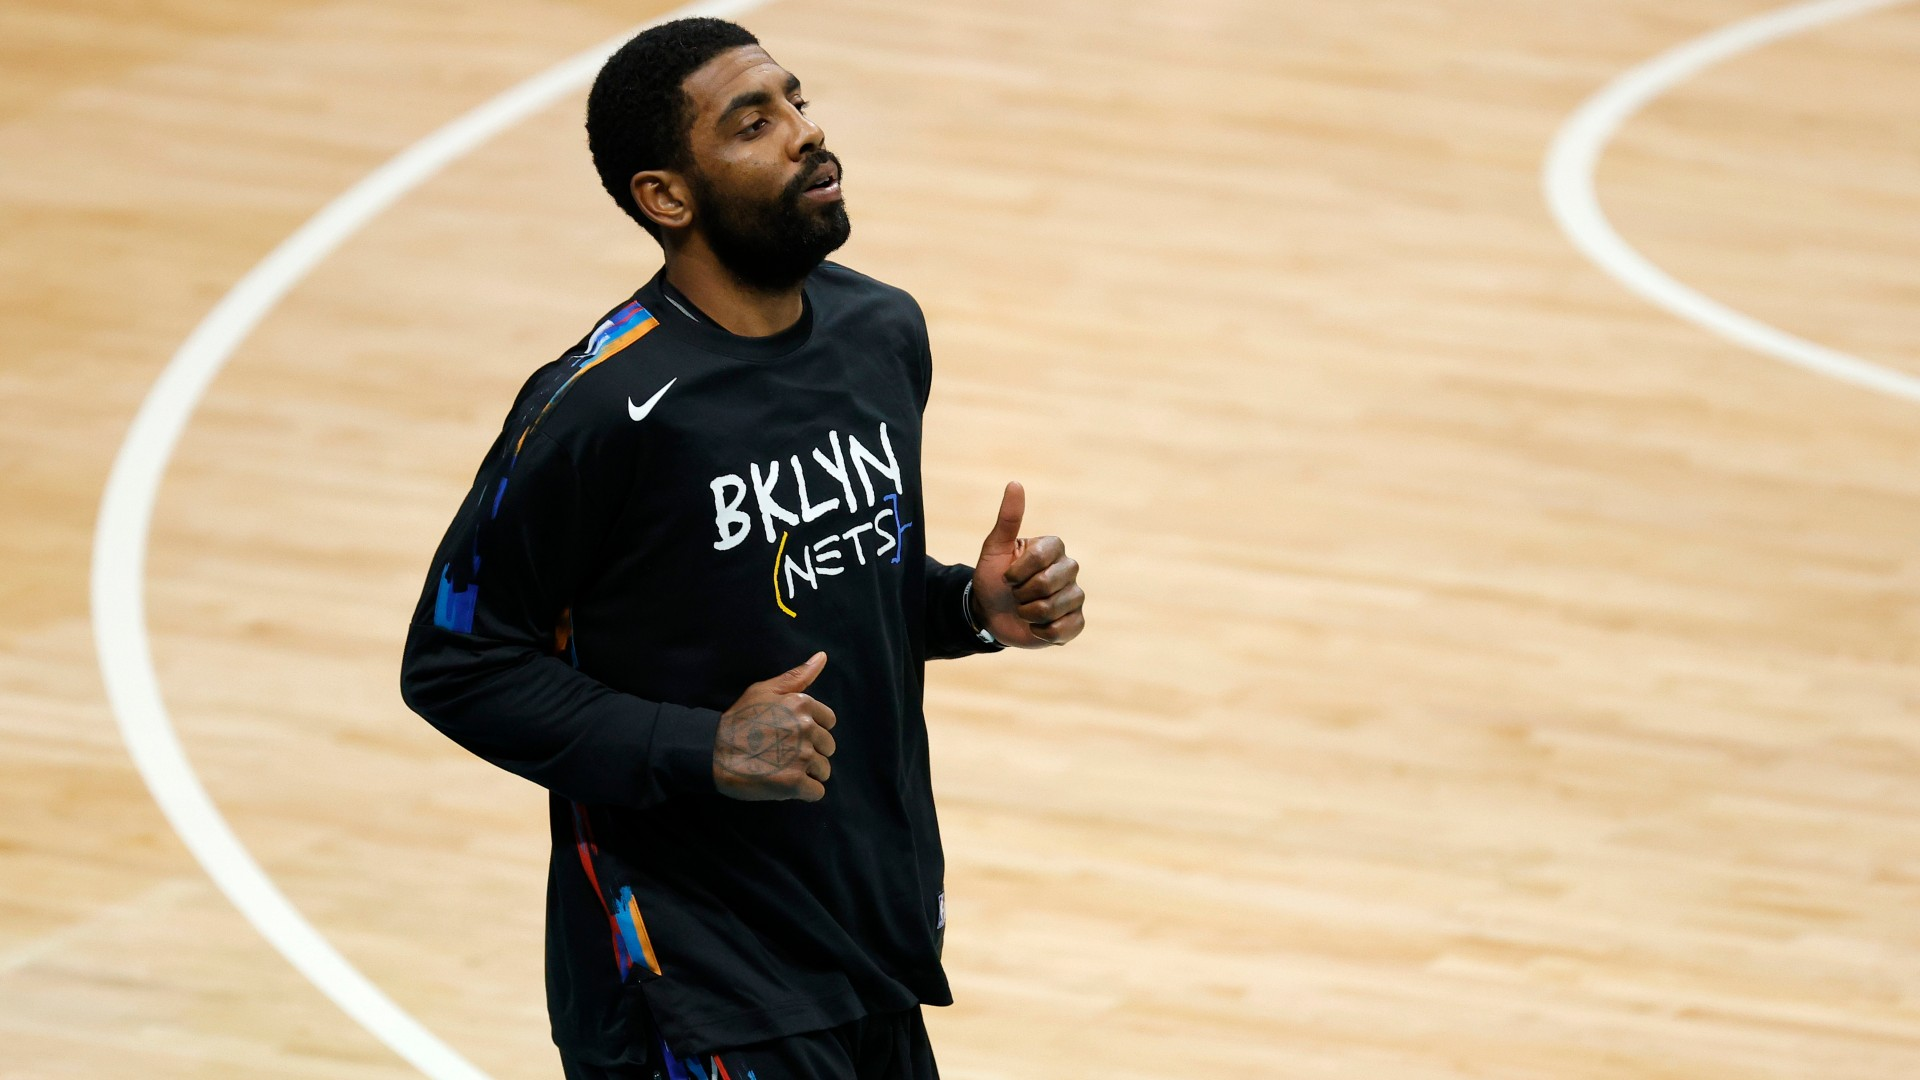 Is Kyrie Irving playing tonight? Here's the latest news on Nets star's return